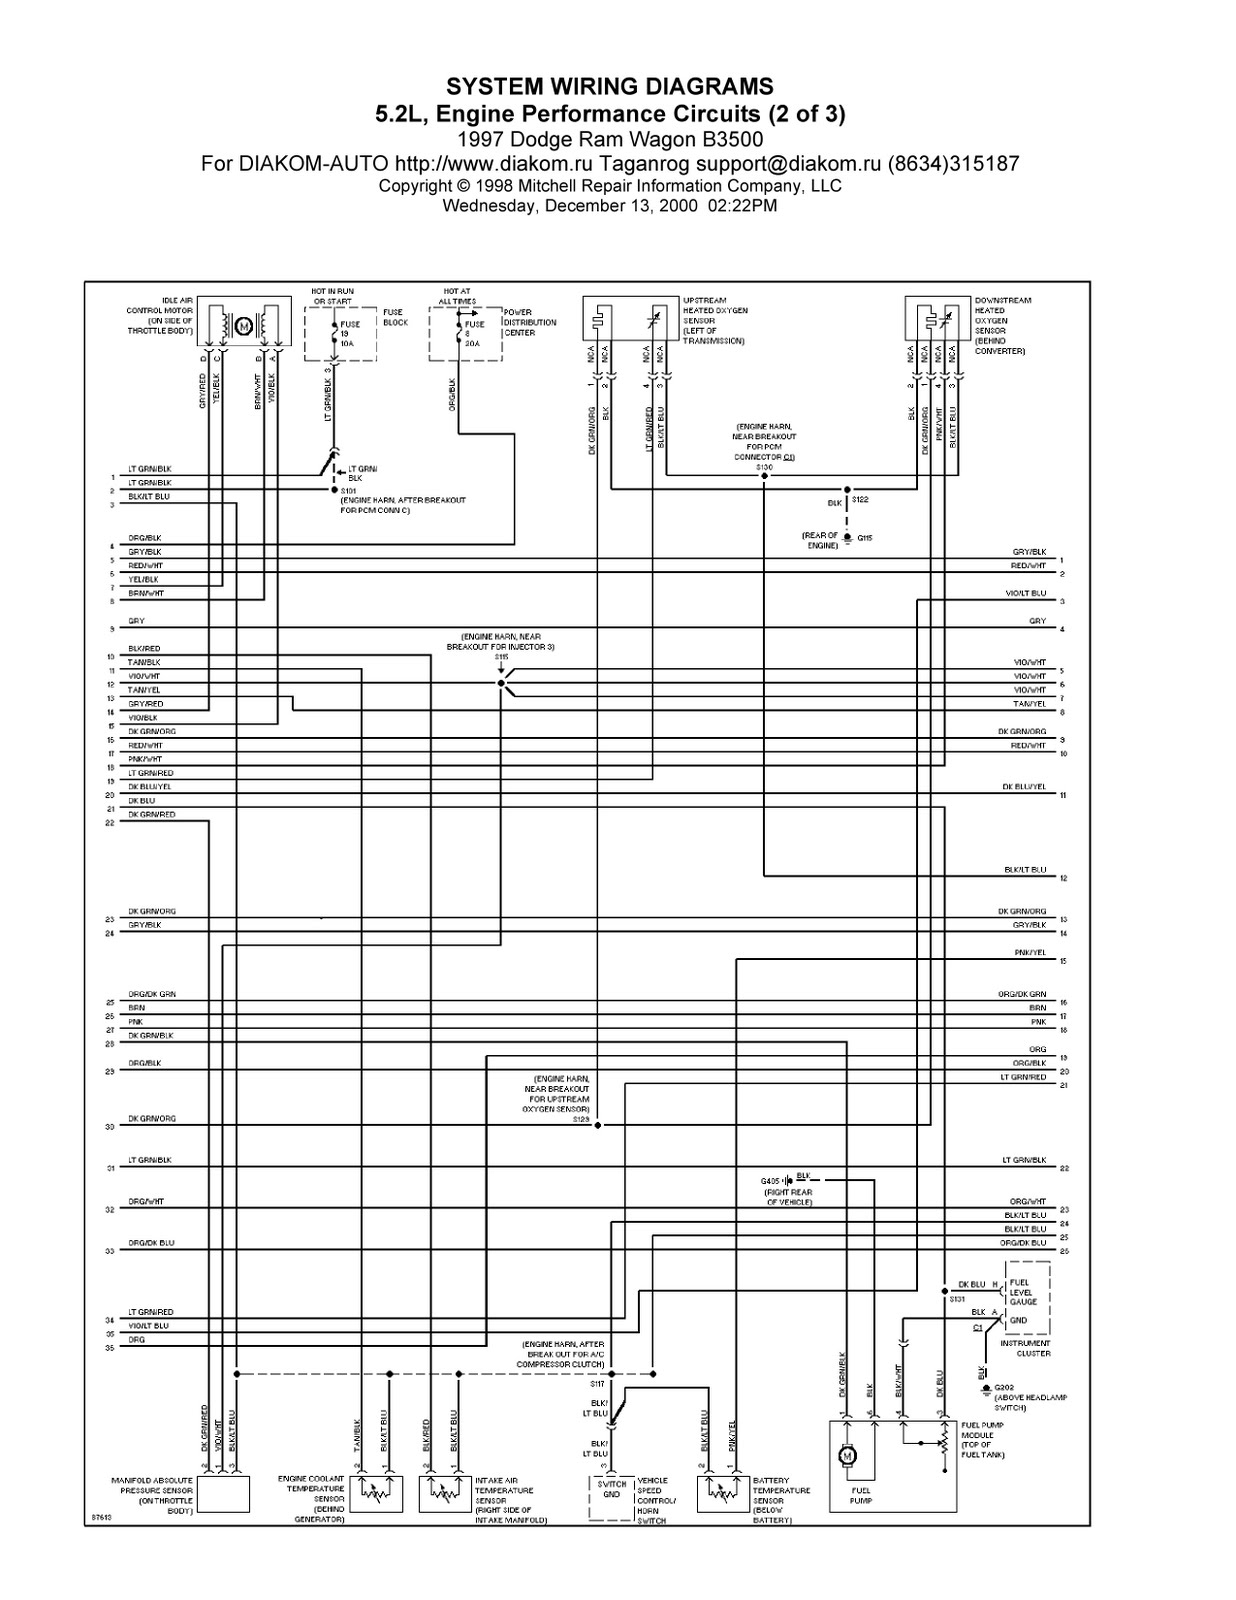 2007 dodge caliber ac wiring diagram images 2007 dodge caliber dodge ram 3500 wiring diagram besides 1997